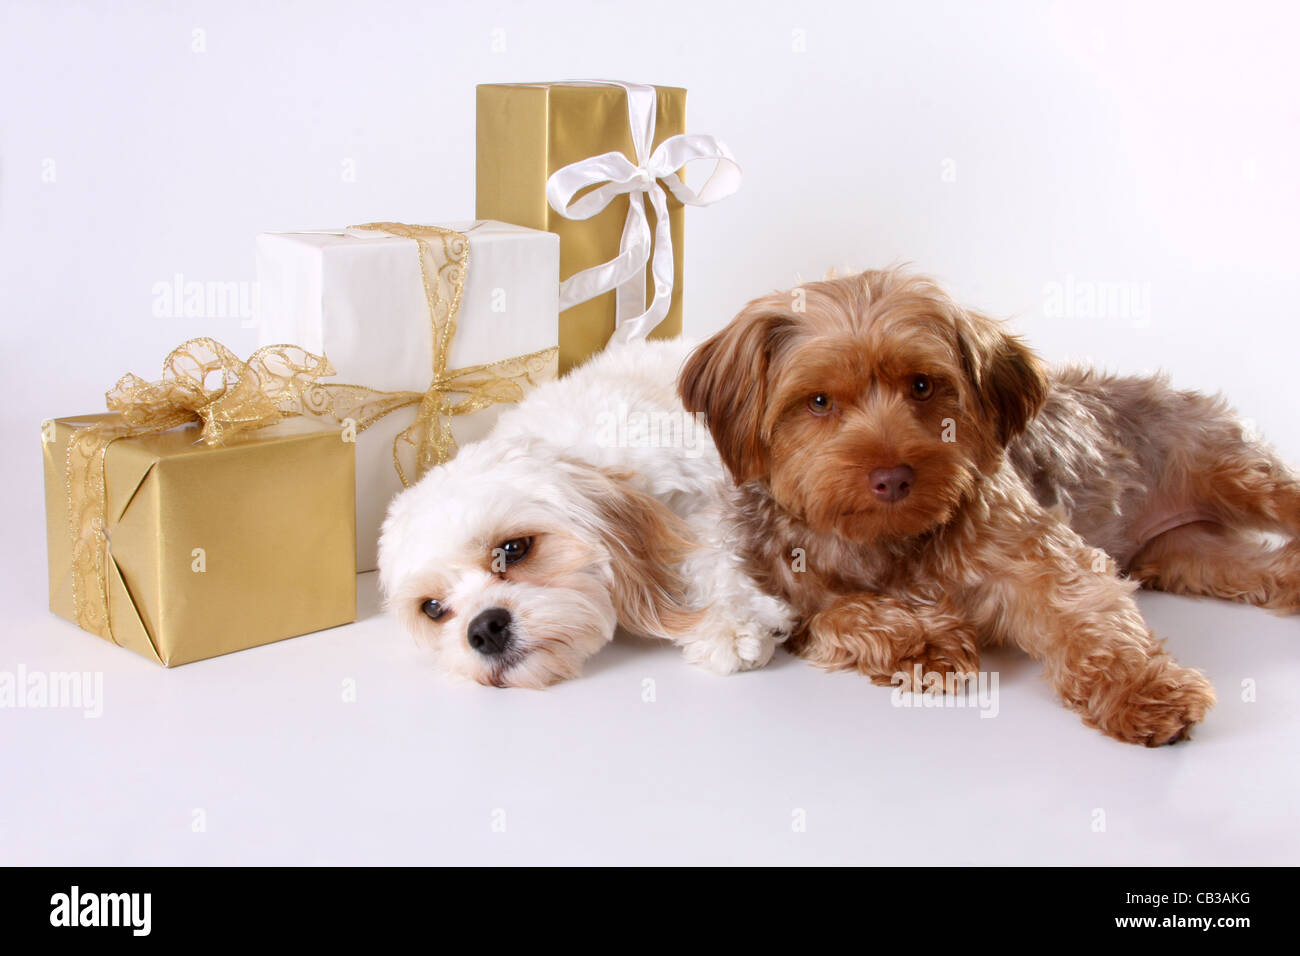 Cavalier King Charles Spaniel And Yorkiepoo Dogs With Christmas